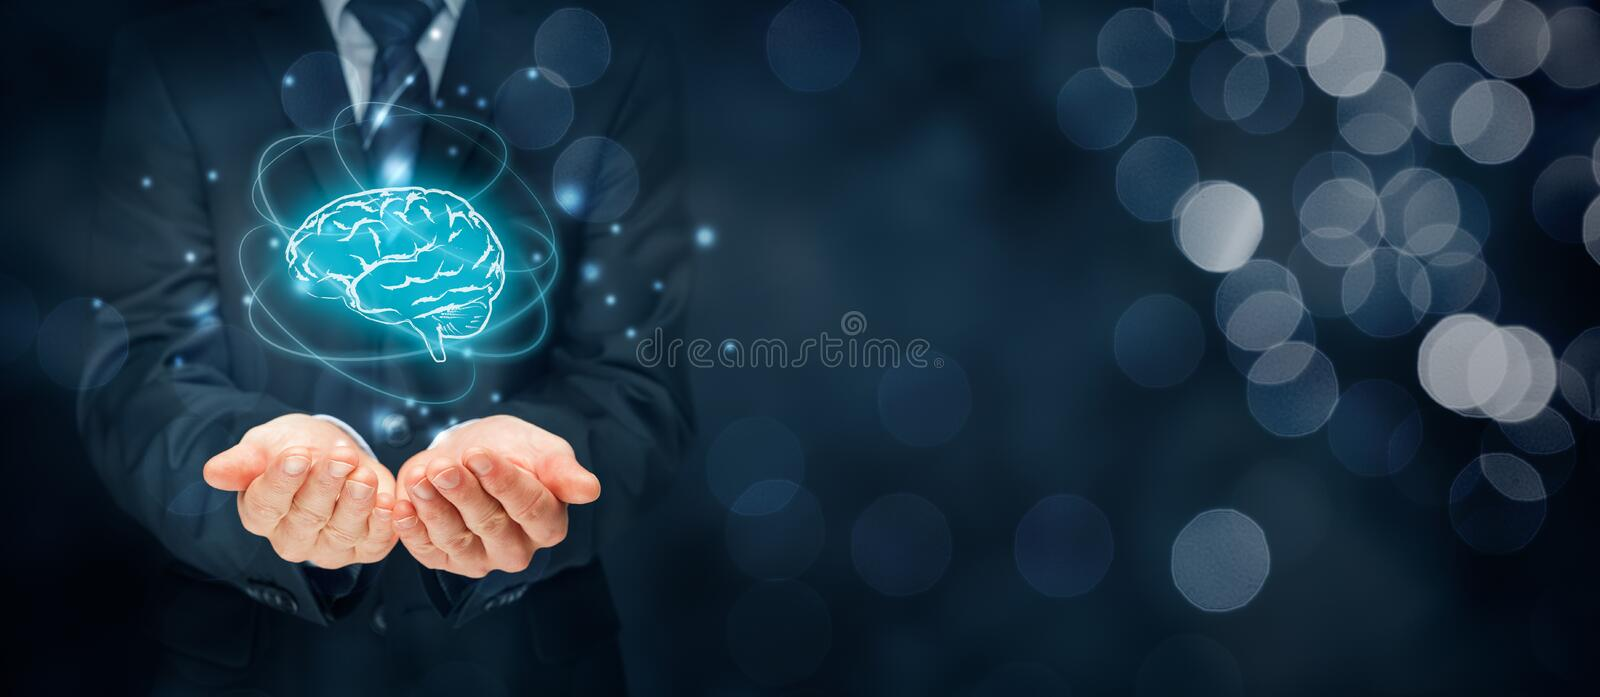 Artificial intelligence and creativity. Artificial intelligence AI, machine deep learning, creativity, headhunter, innovation and intellectual property rights royalty free stock photography